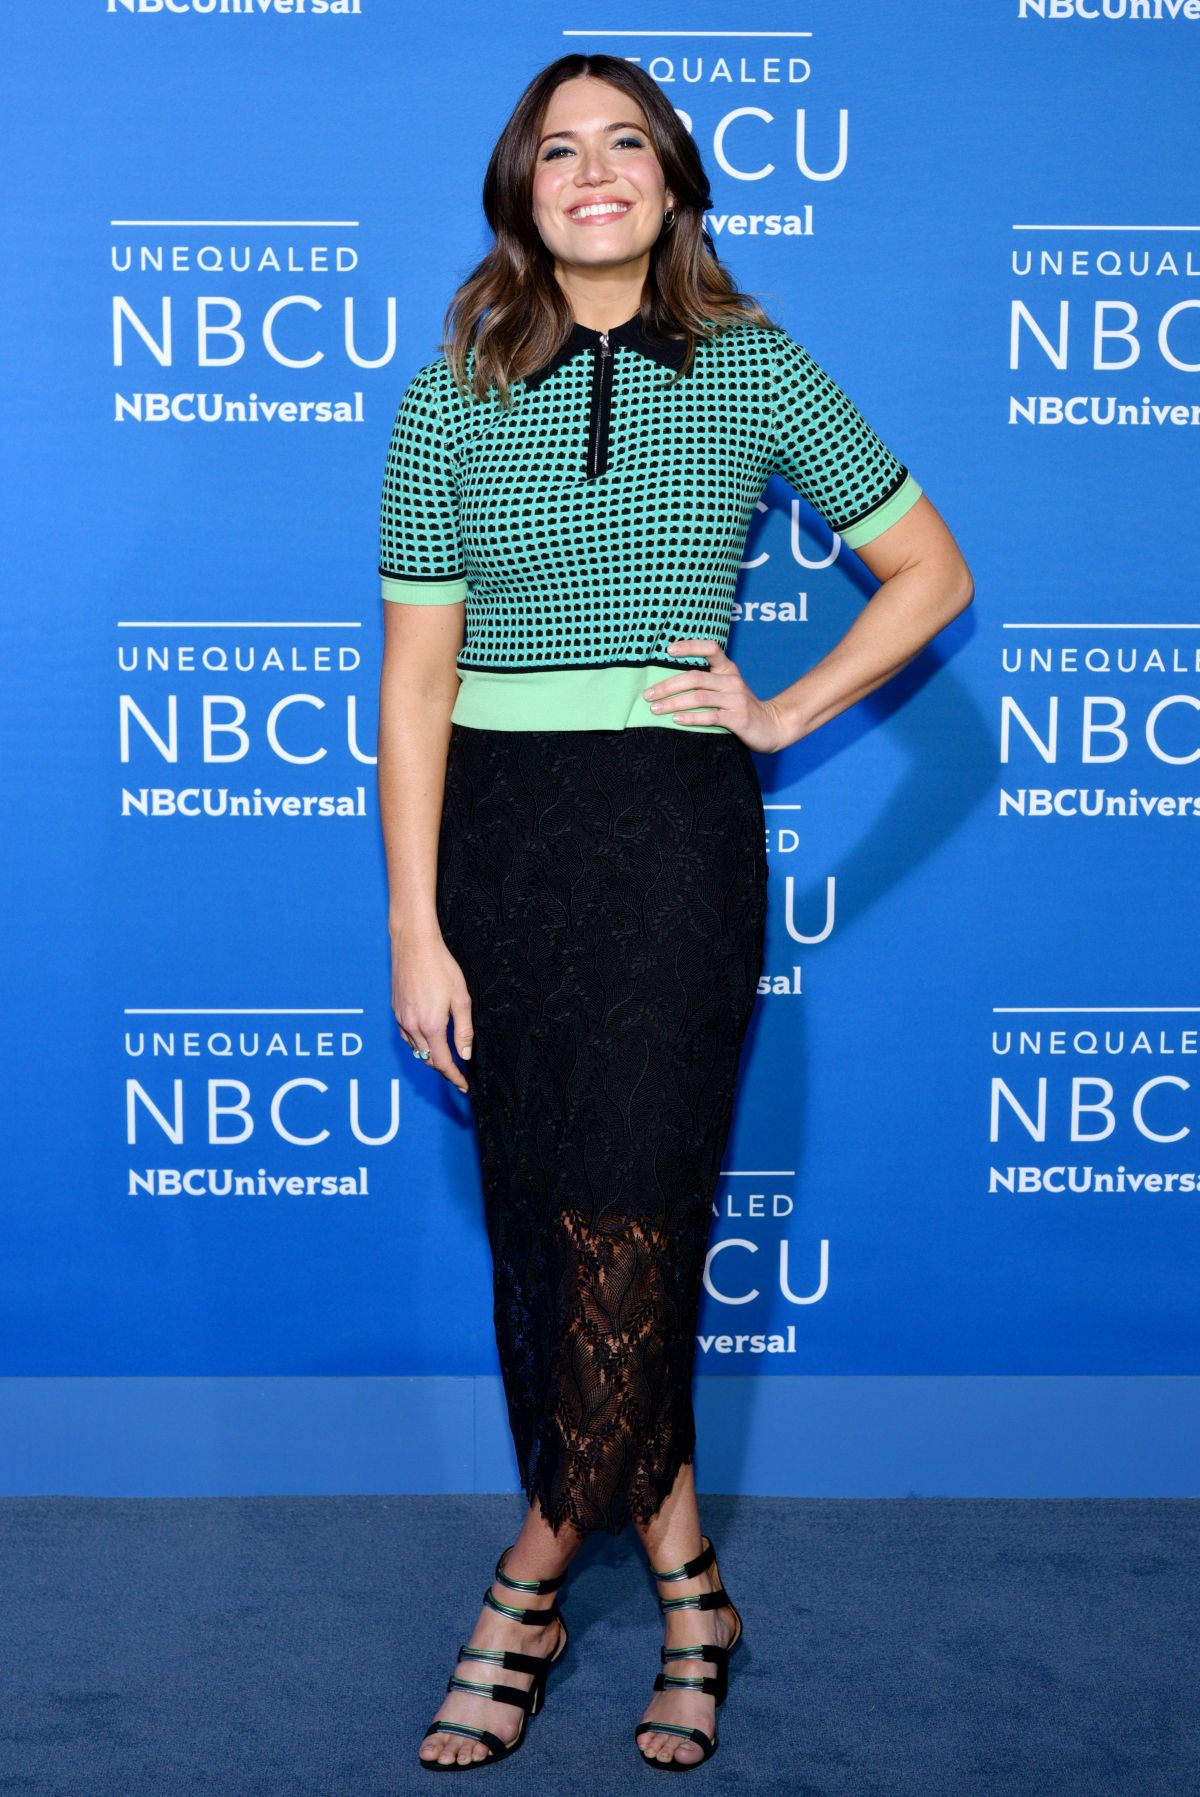 Mandy Moore At NBCUniversal Upfront in New York City   mandy-moore-at-nbcuniversal-upfront-in-new-york-city_3